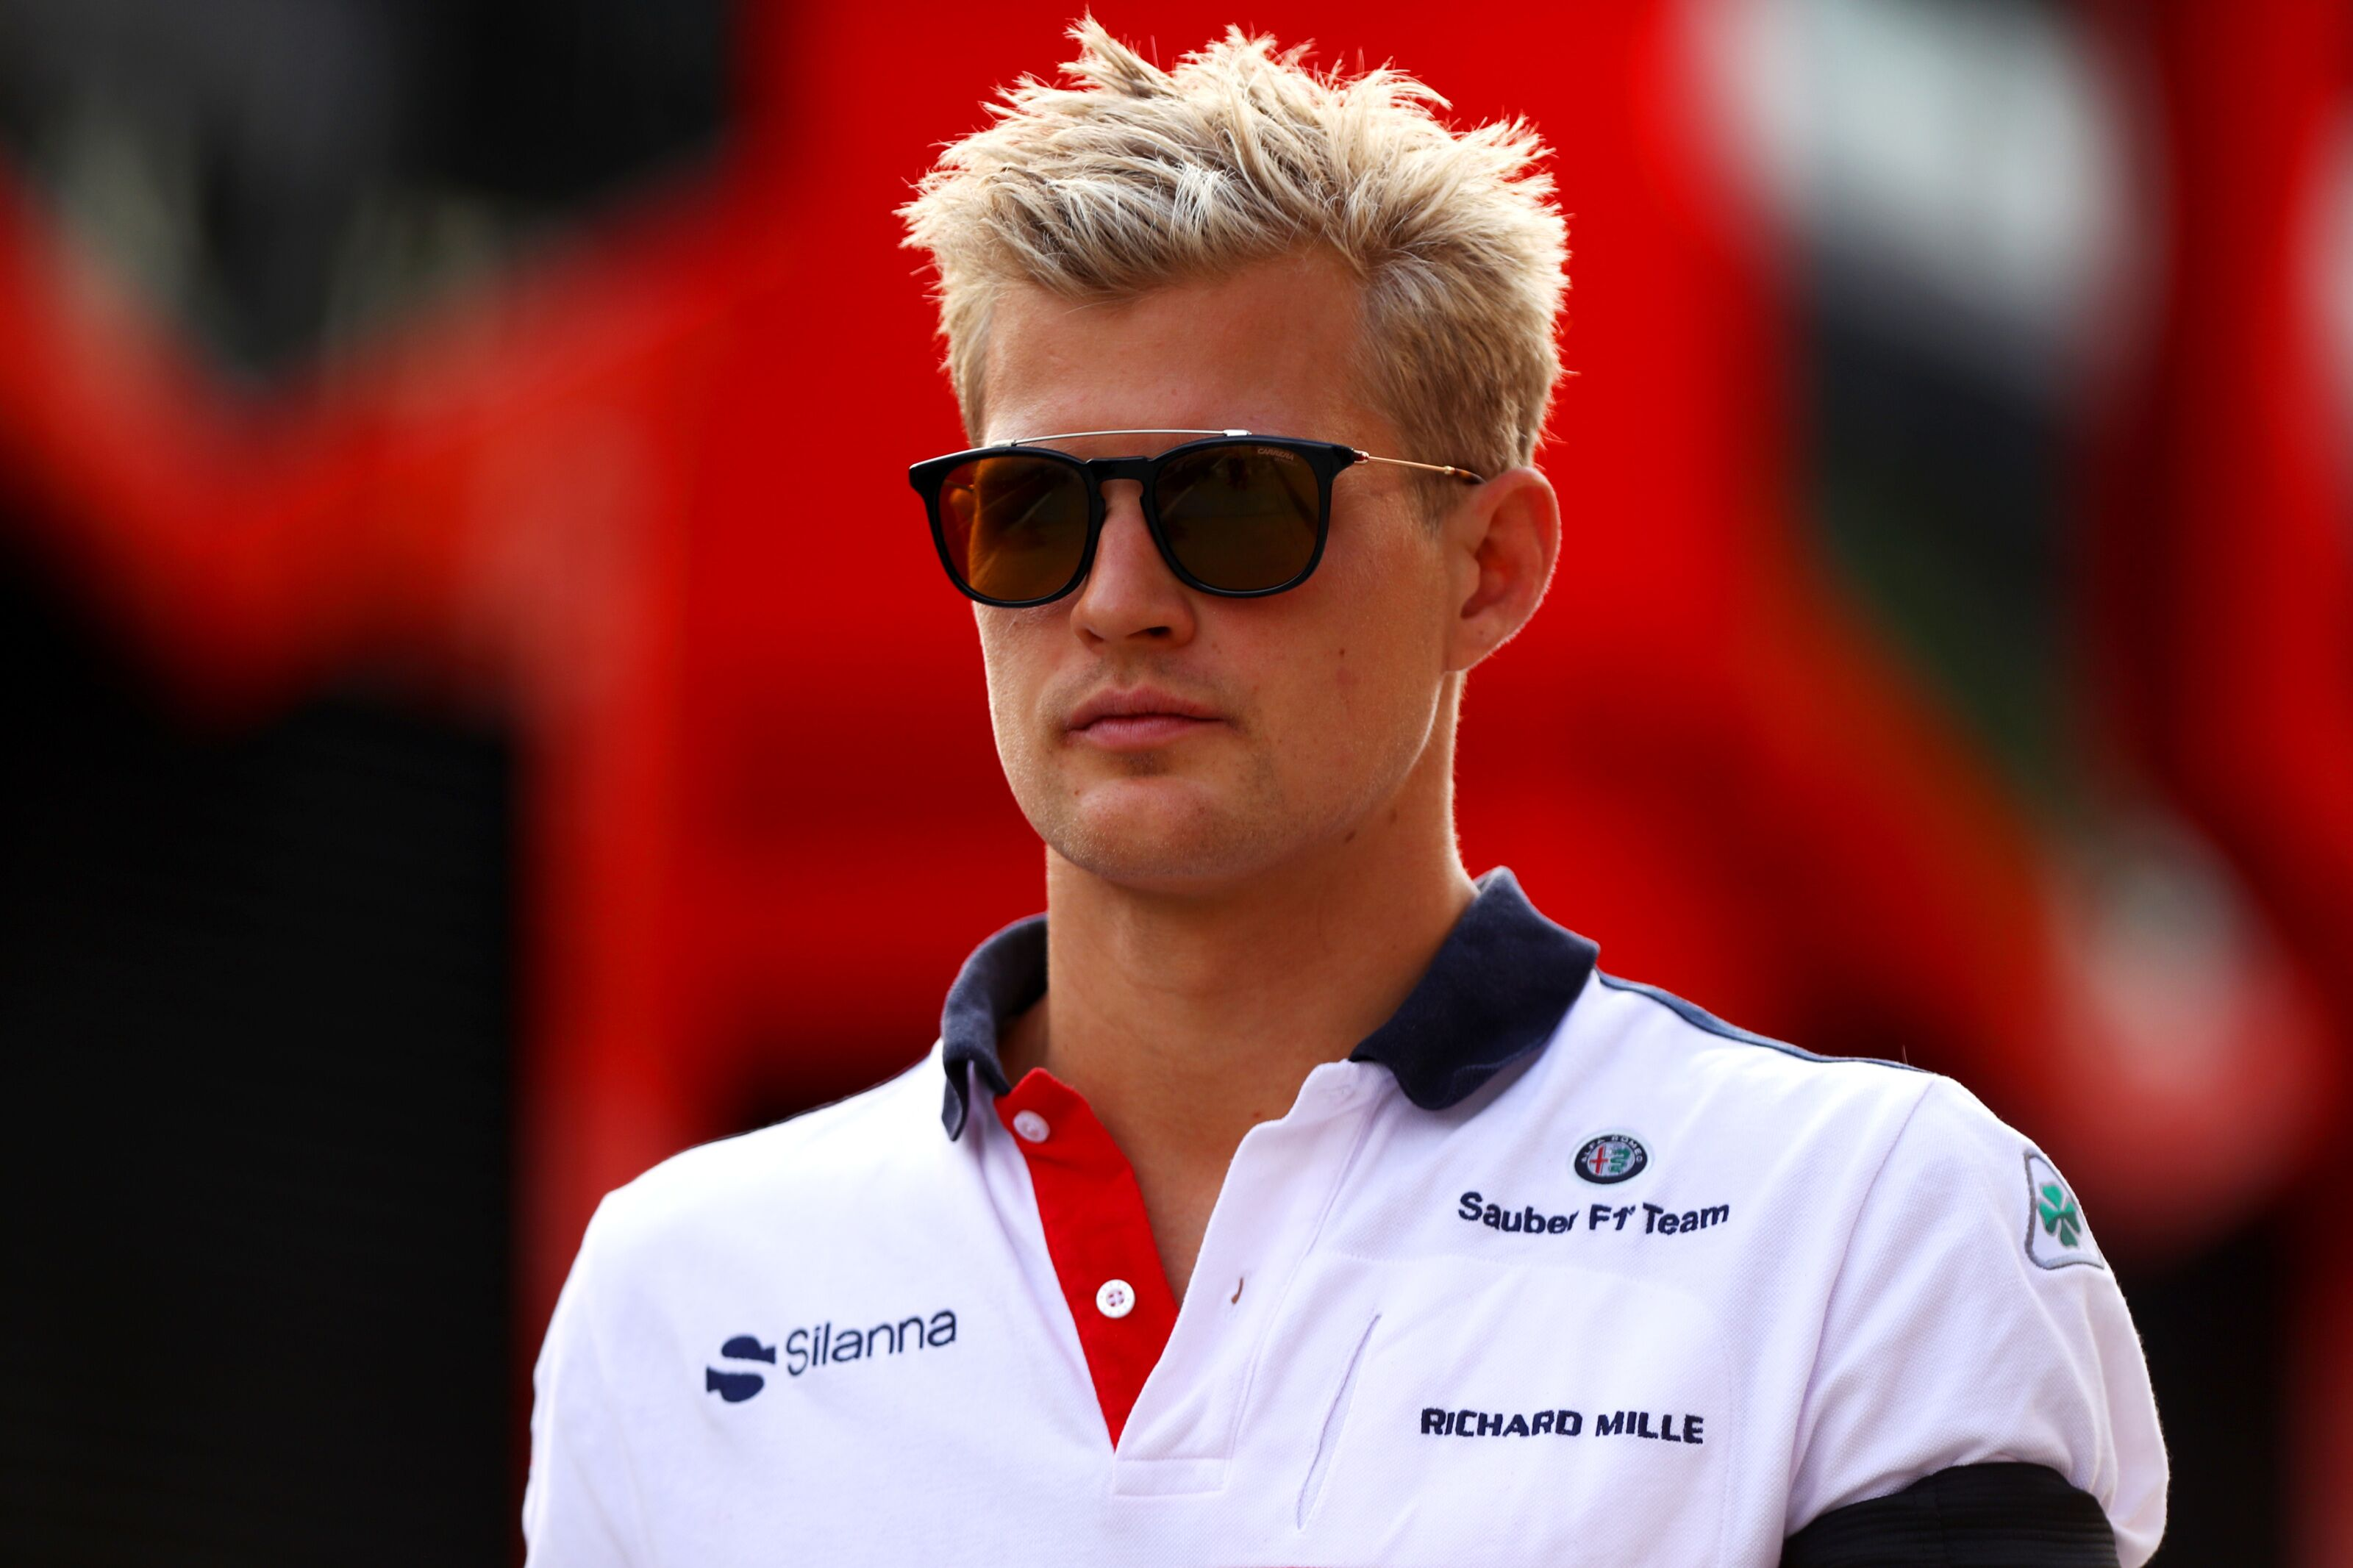 IndyCar: Marcus Ericsson to drive for Schmidt Peterson Motorsports in 2019